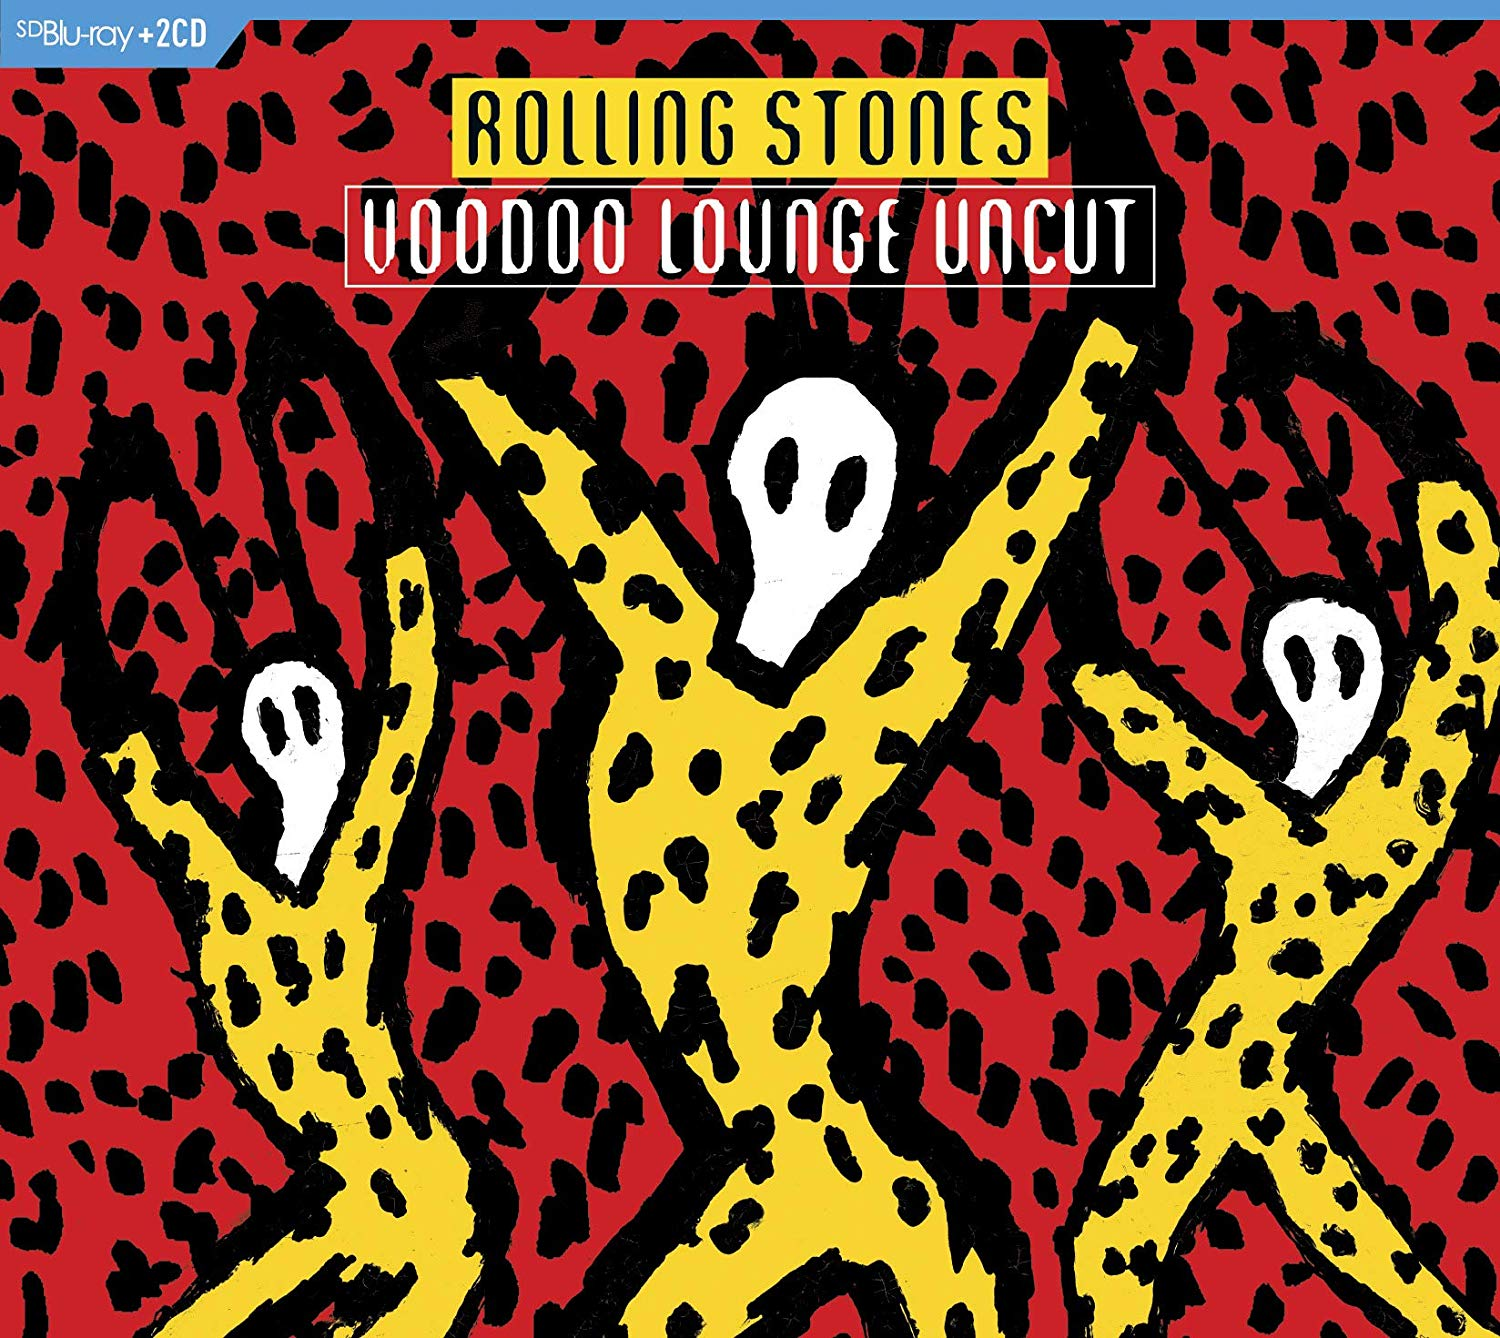 The Rolling Stones - Voodoo Lounge Uncut [2CD/Blu-ray]